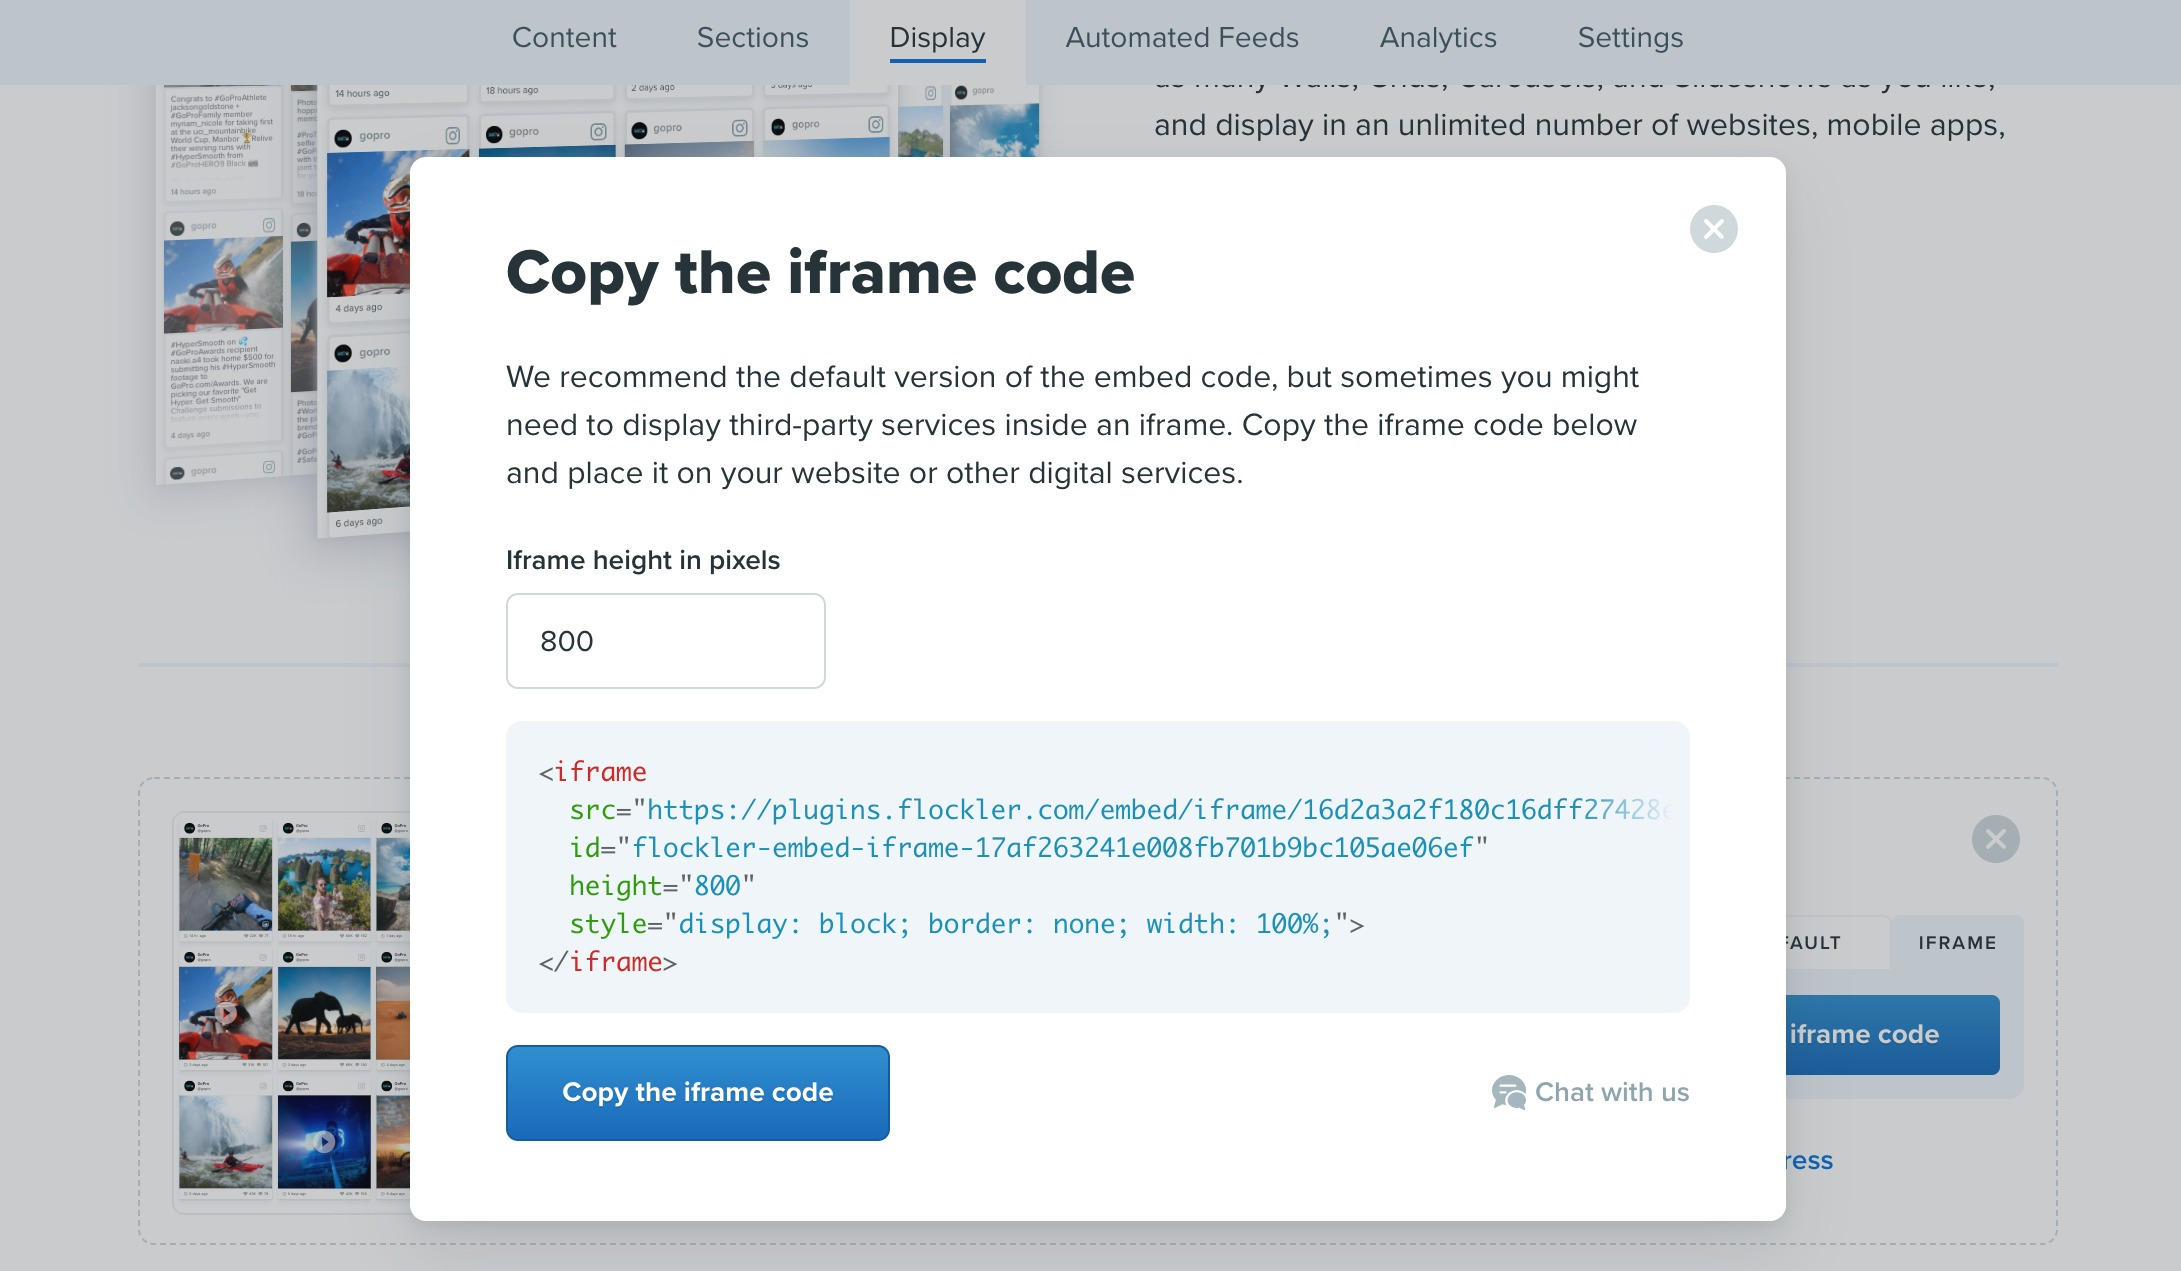 Customizing the height of the iframe embed code on the Flockler platform